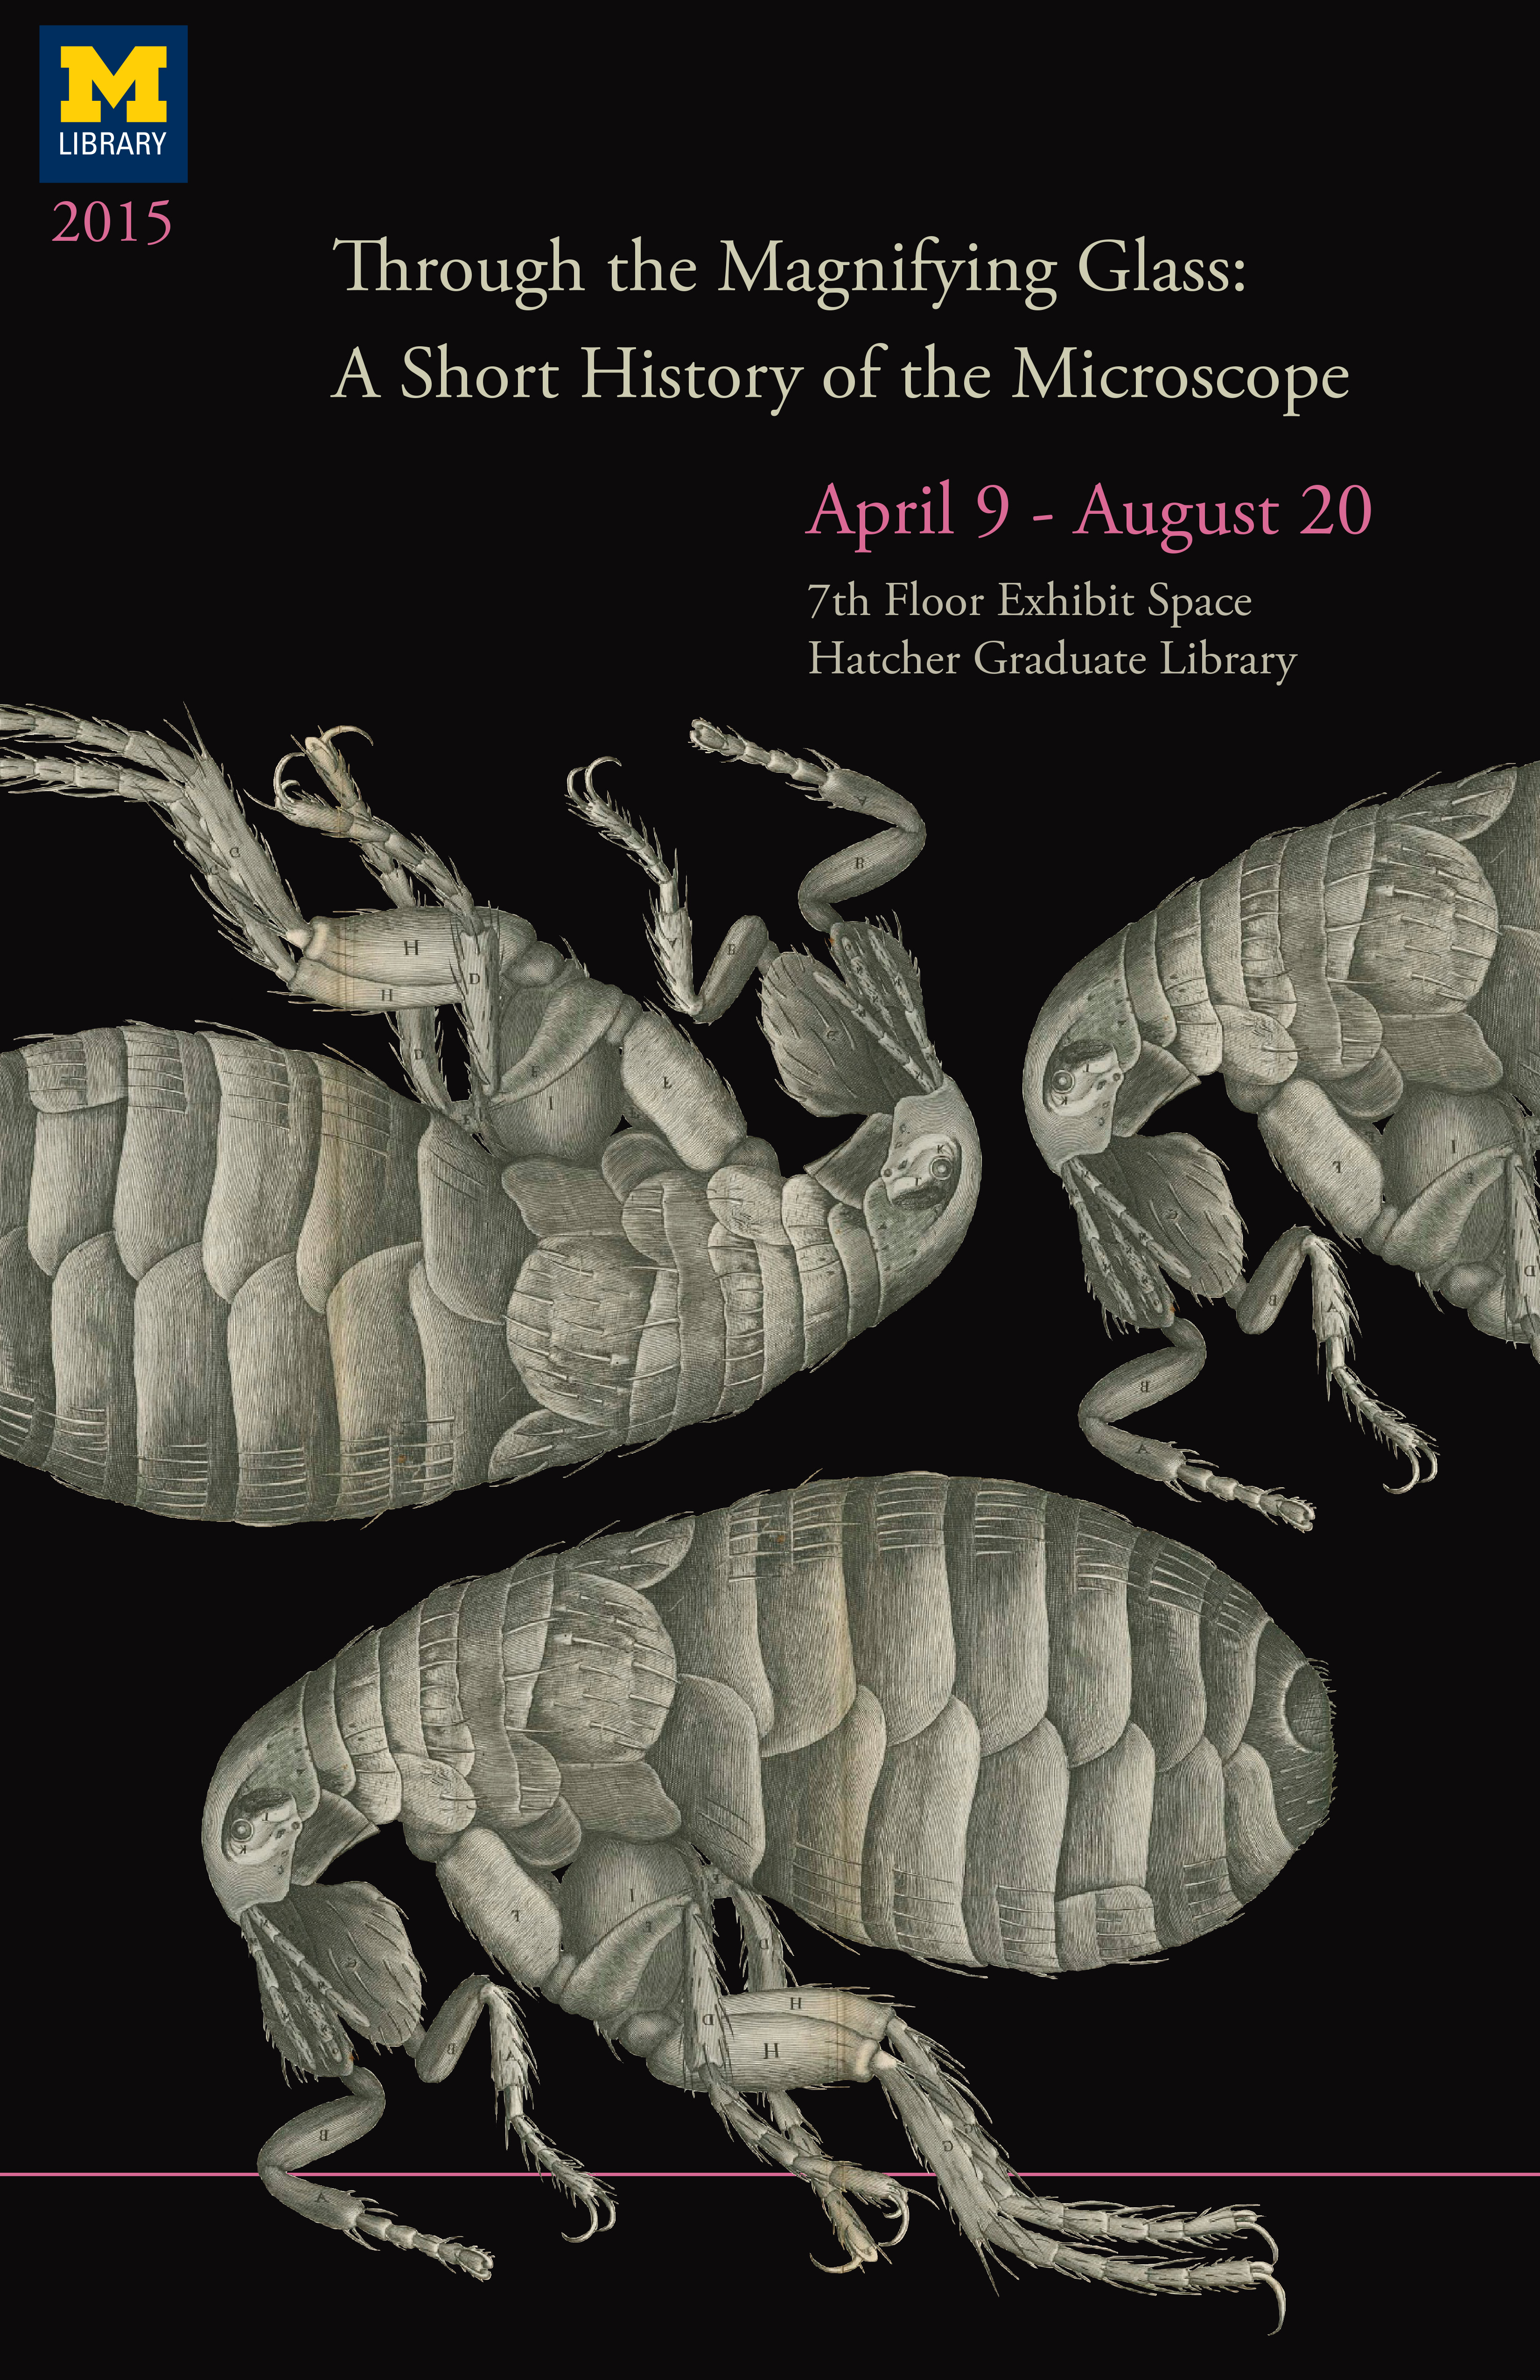 Exhibit Poster Based on an engraving of a flea from Robert Hooke's Micrographia